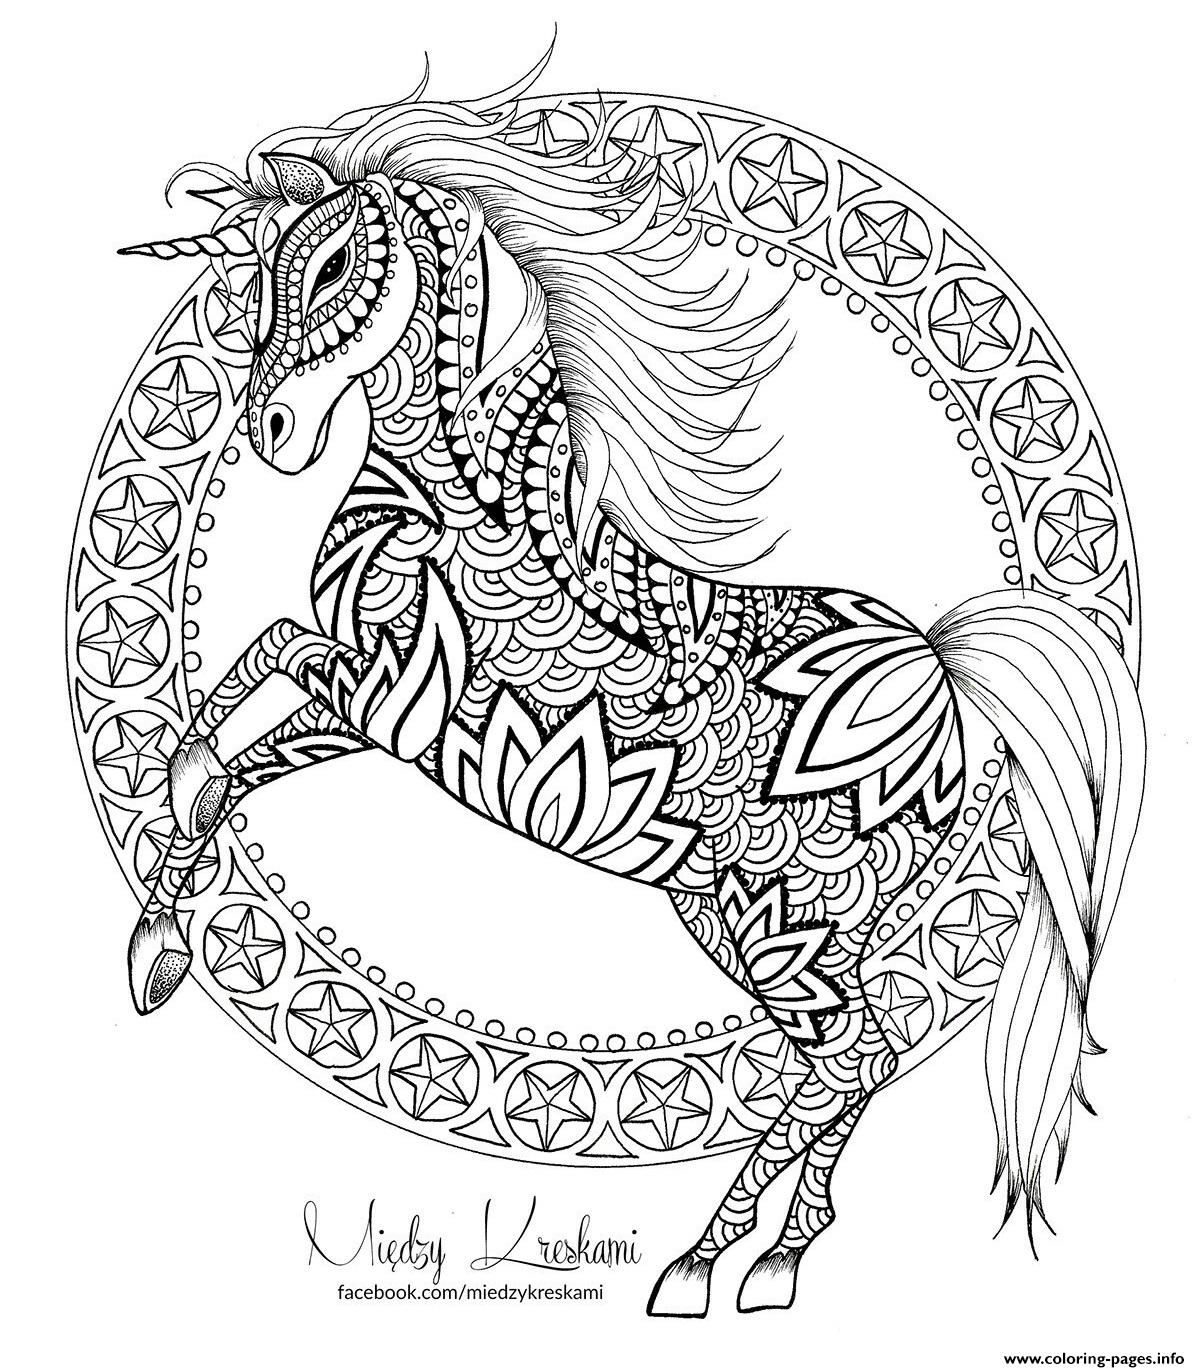 Mandala unicorn adult 2018 coloring pages printable